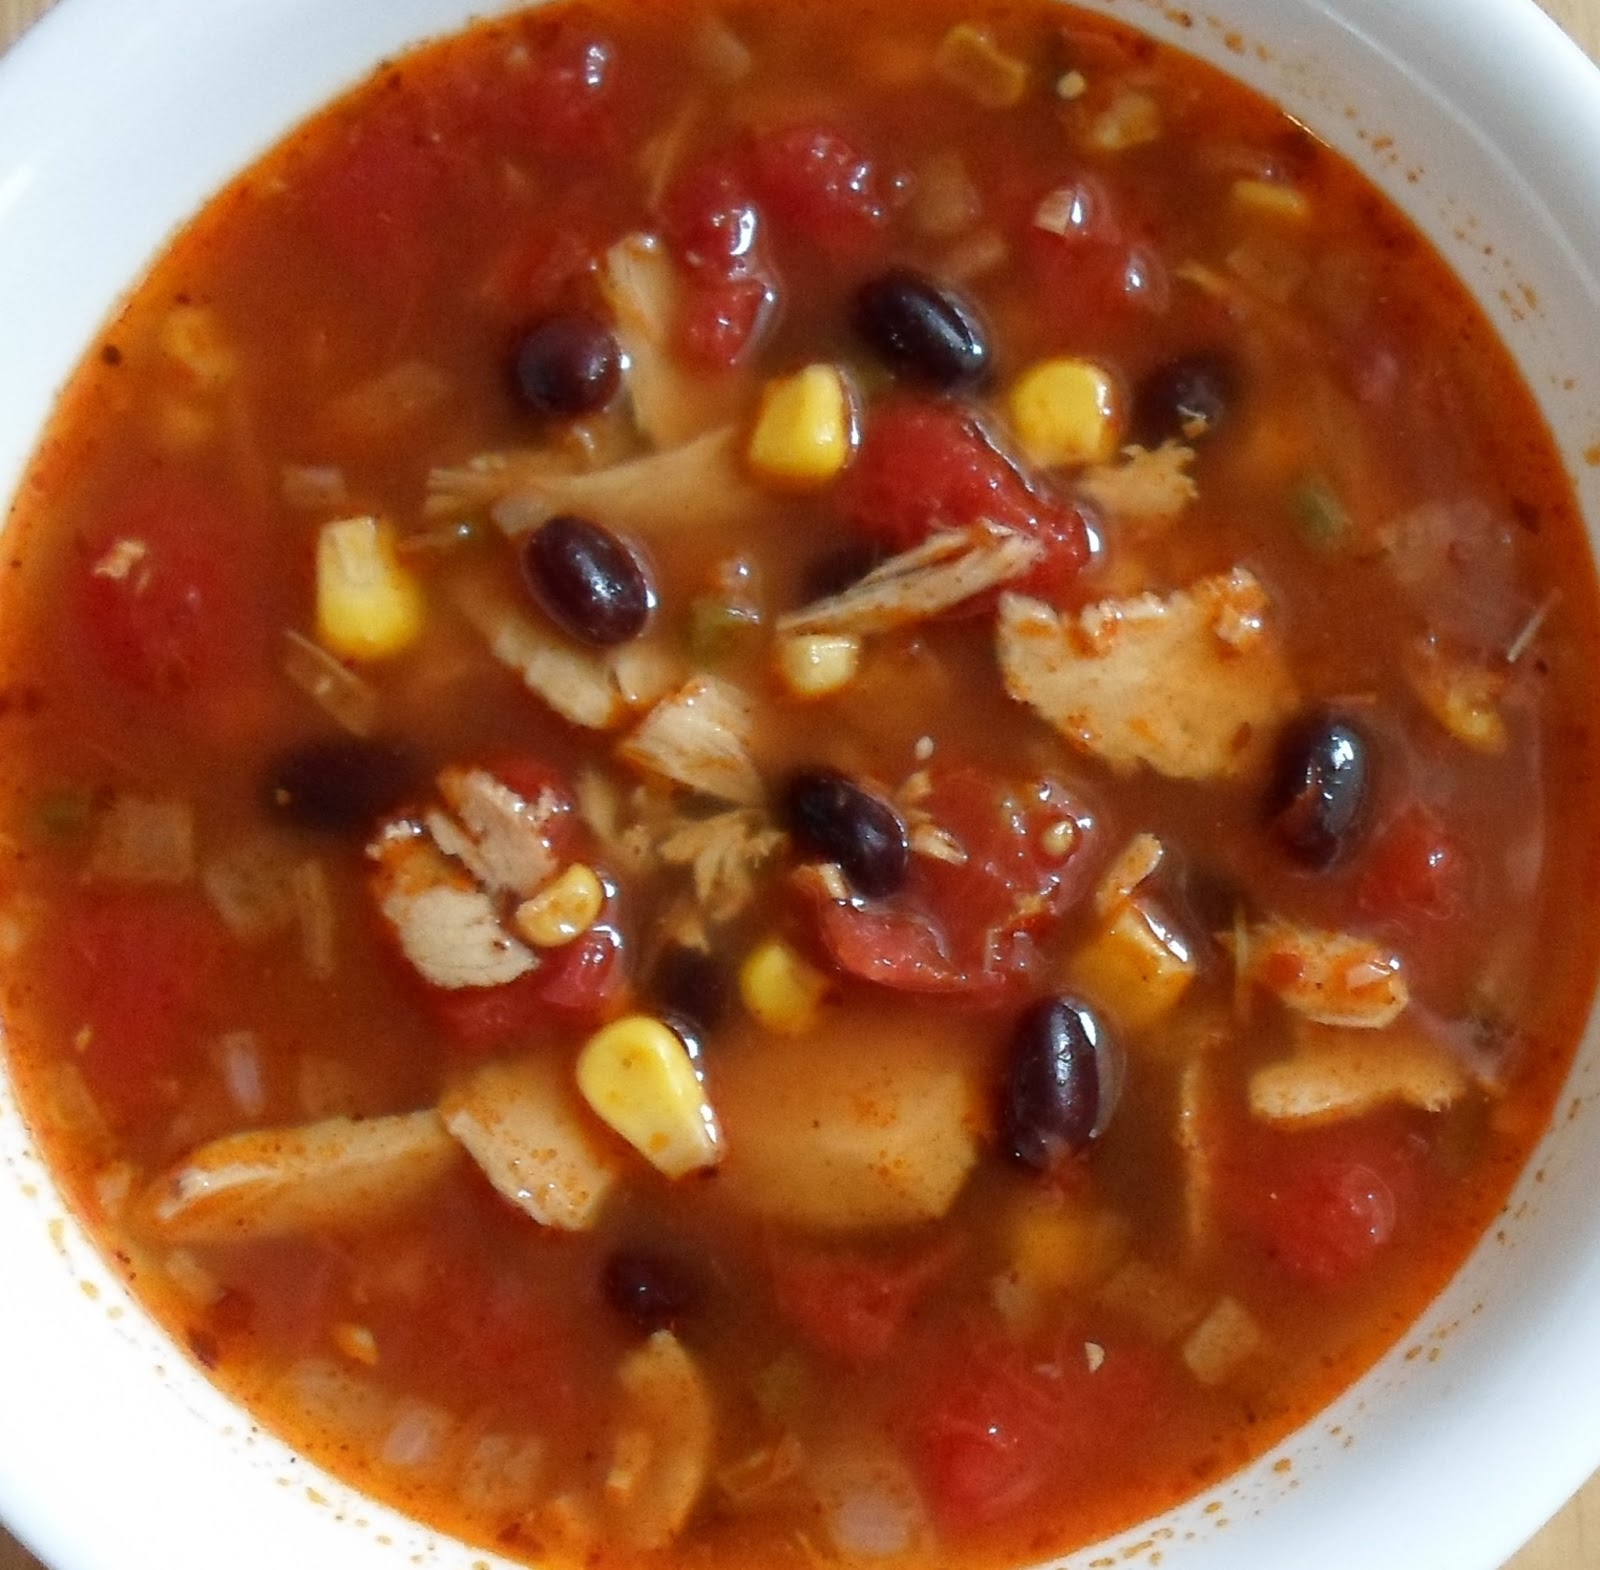 Happier Than A Pig In Mud: Southwestern Turkey and Black Bean Soup